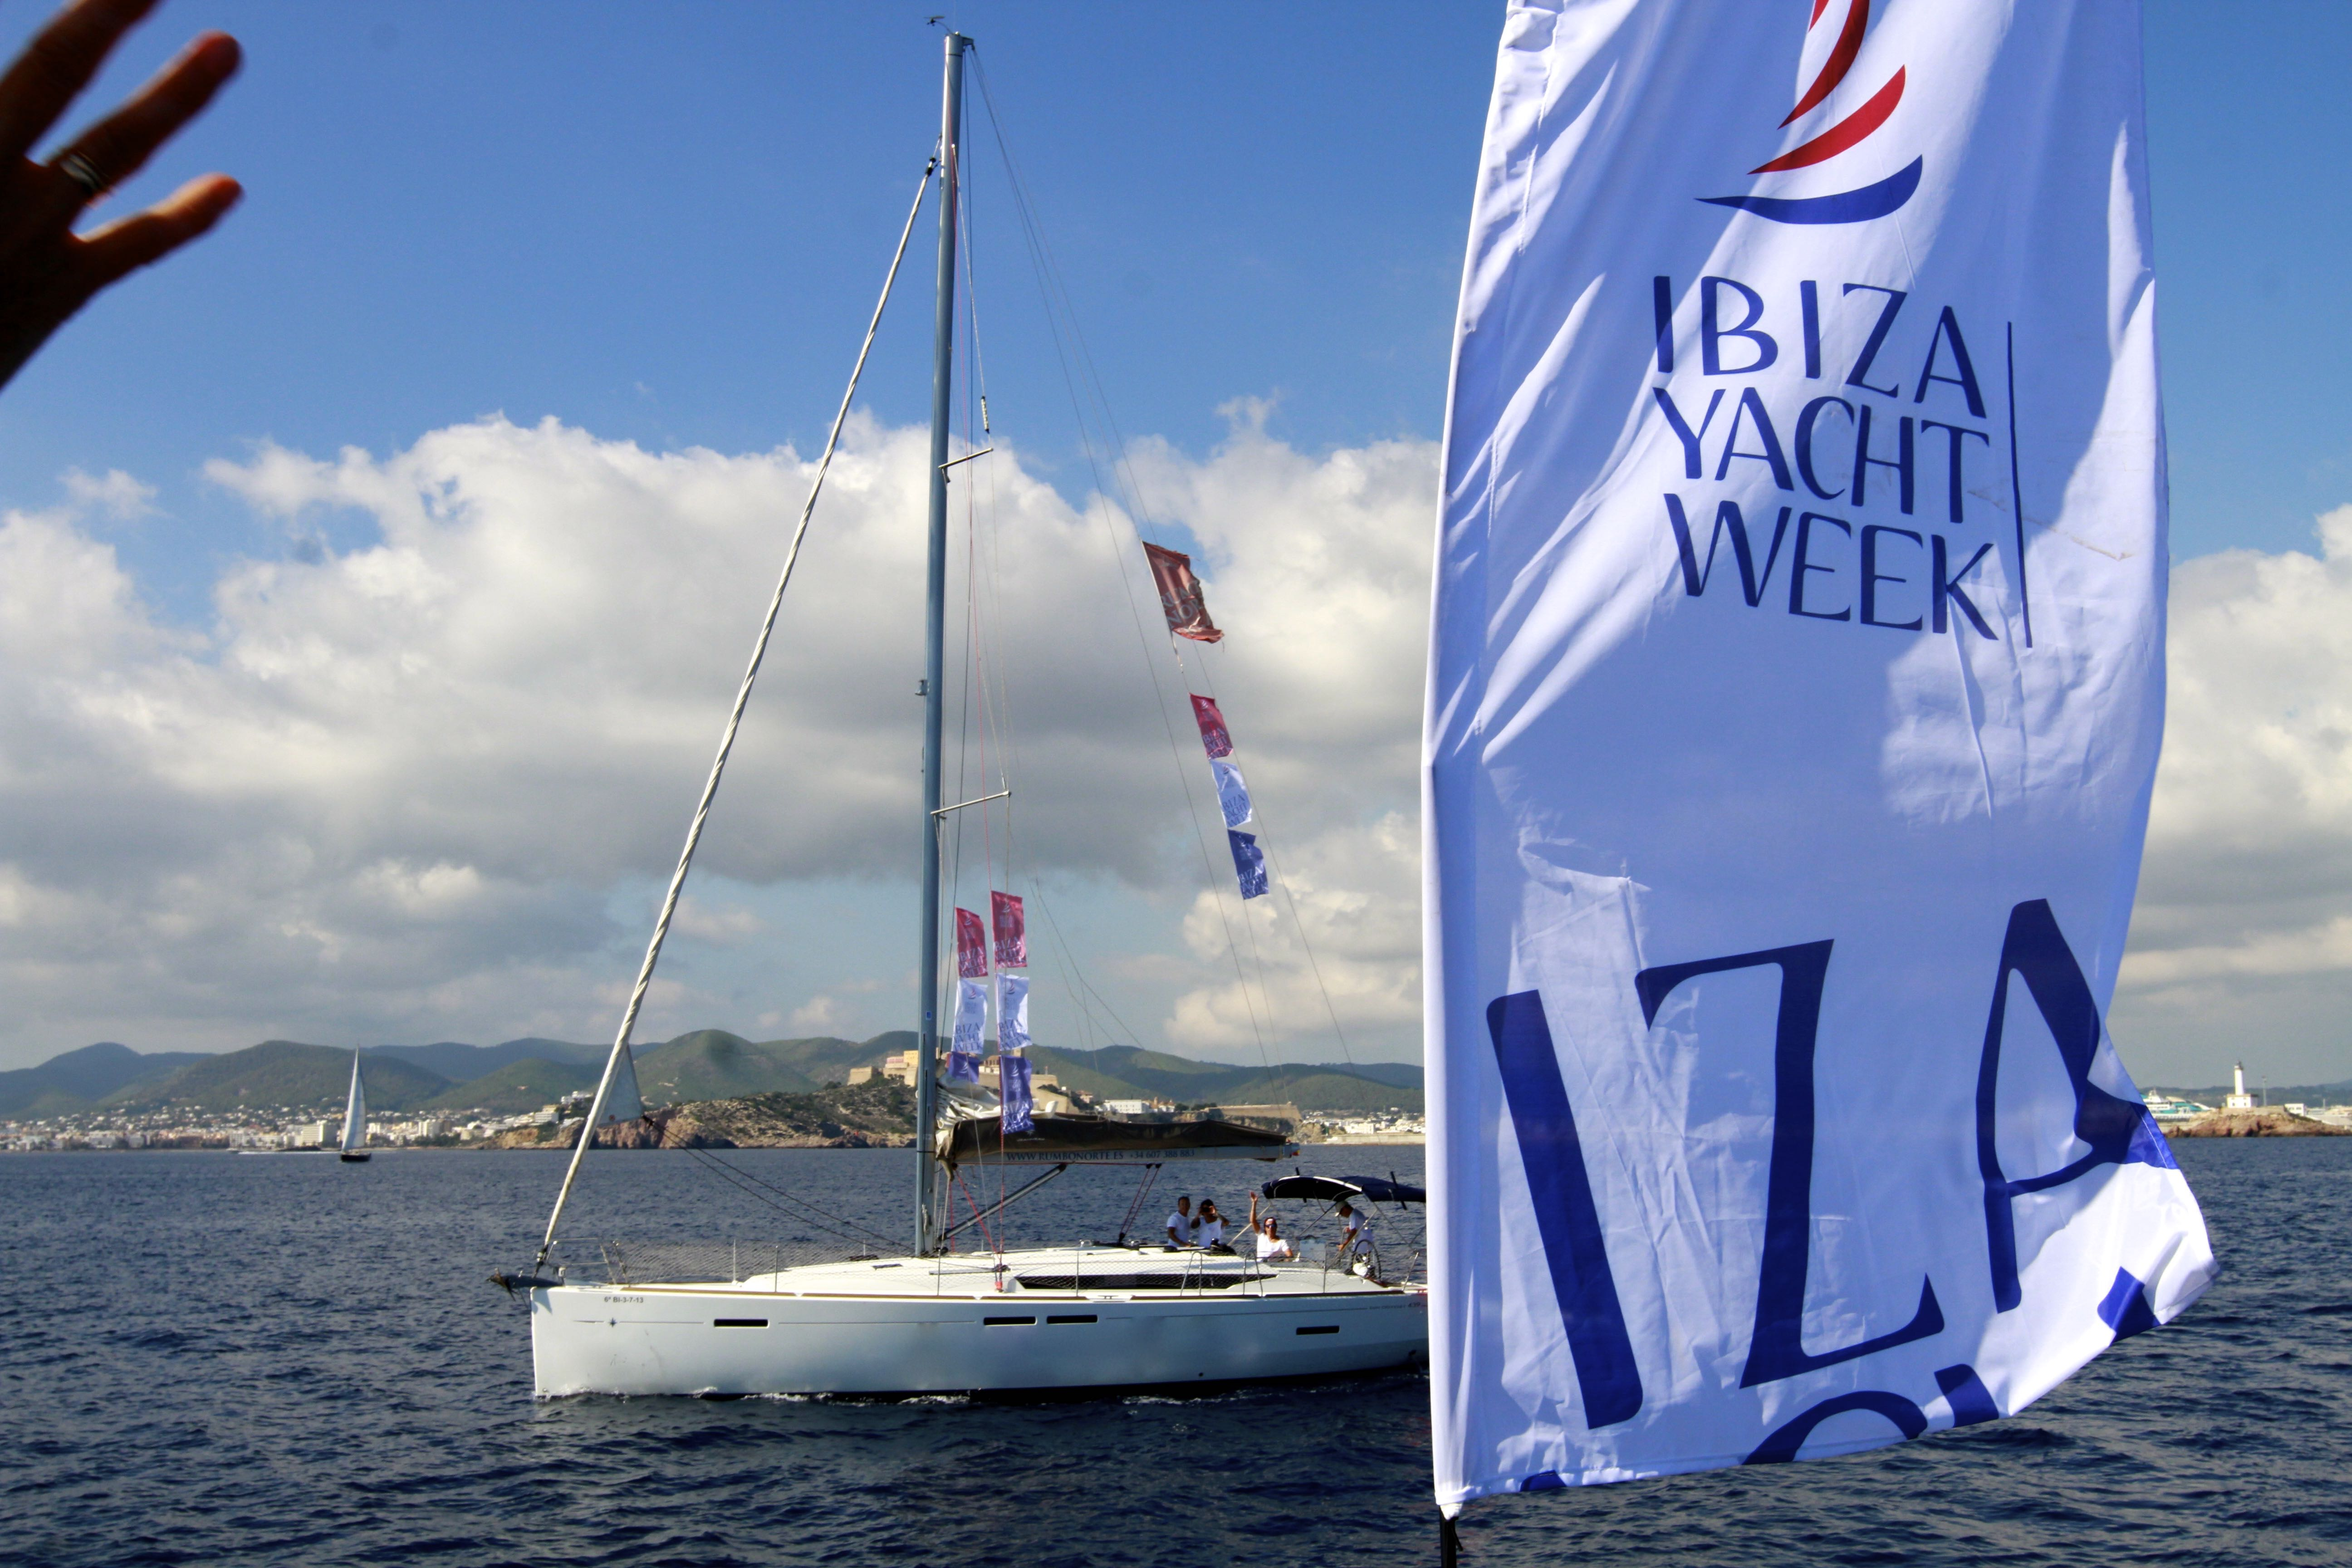 One of our friends: Ibiza Sail Week